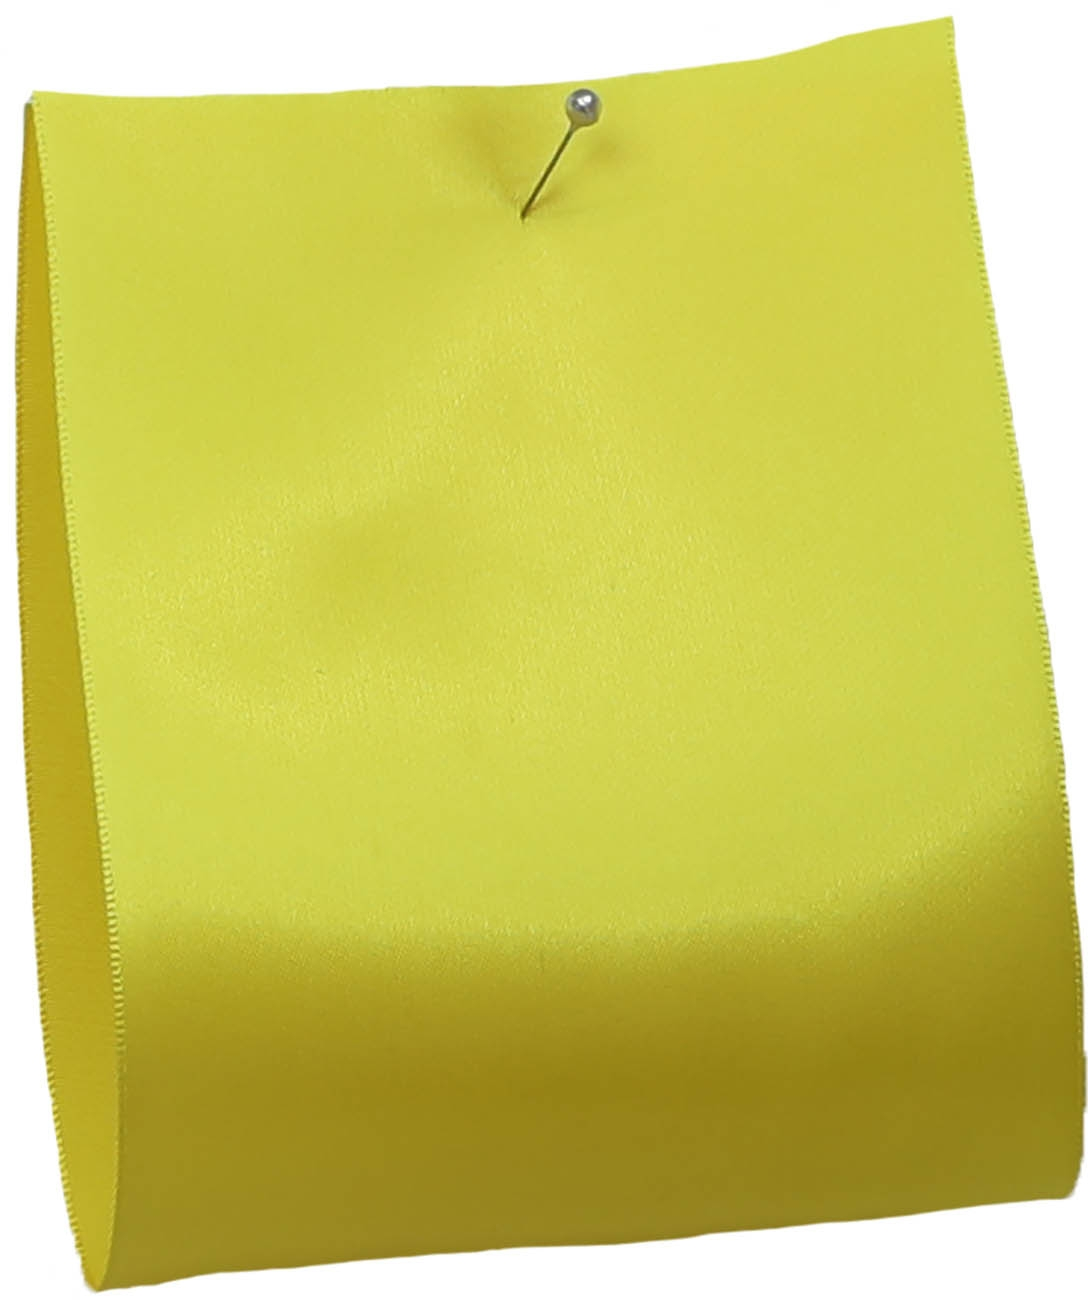 100mm wide satin ribbon in yellow